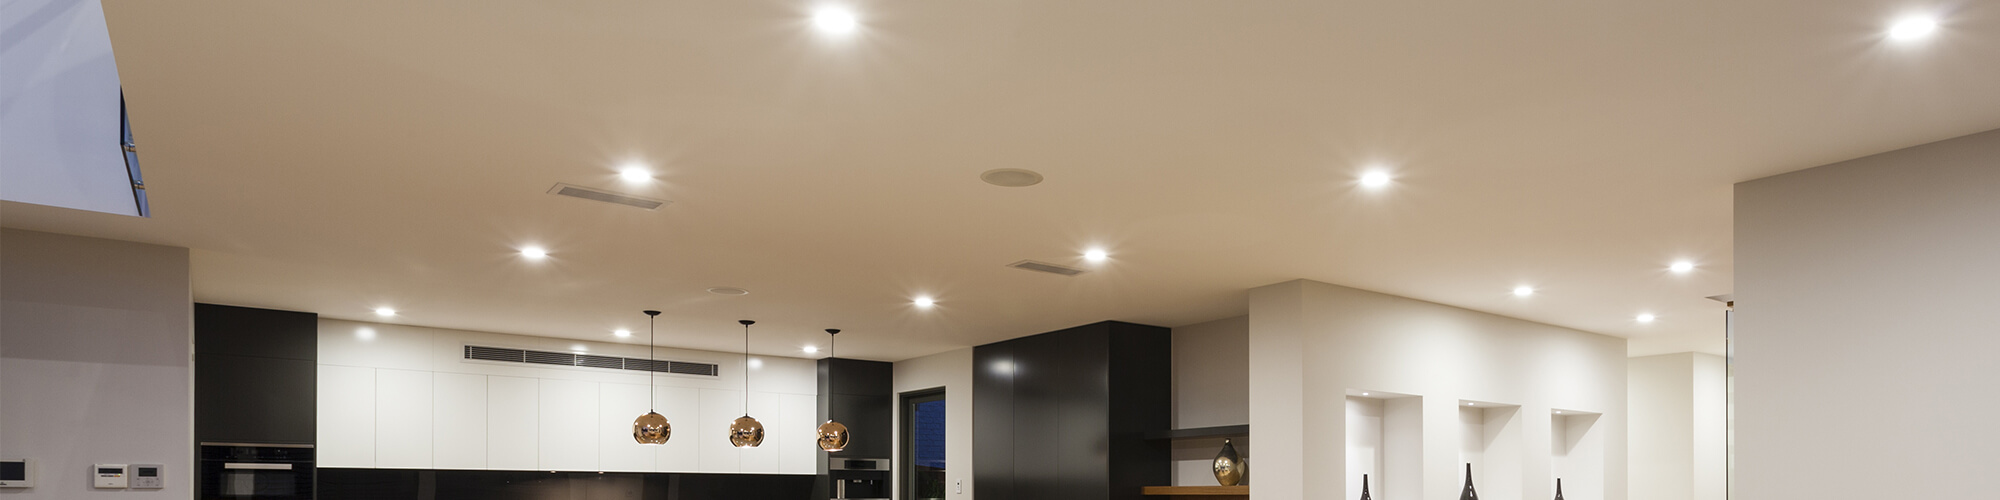 Overhead Lighting Recessed Lighting The Home Depot